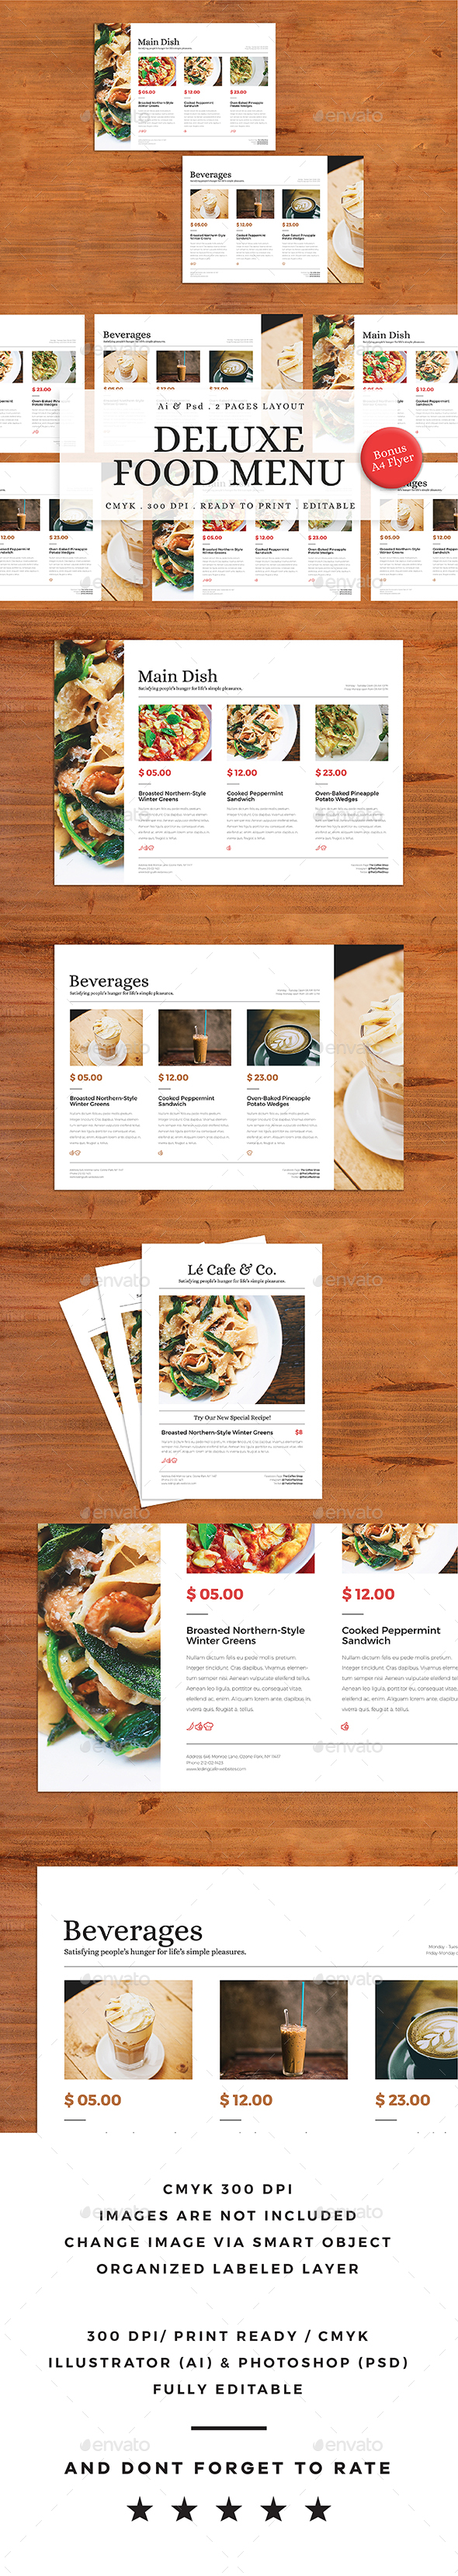 Deluxe Food Menu + A4 Flyer Menu